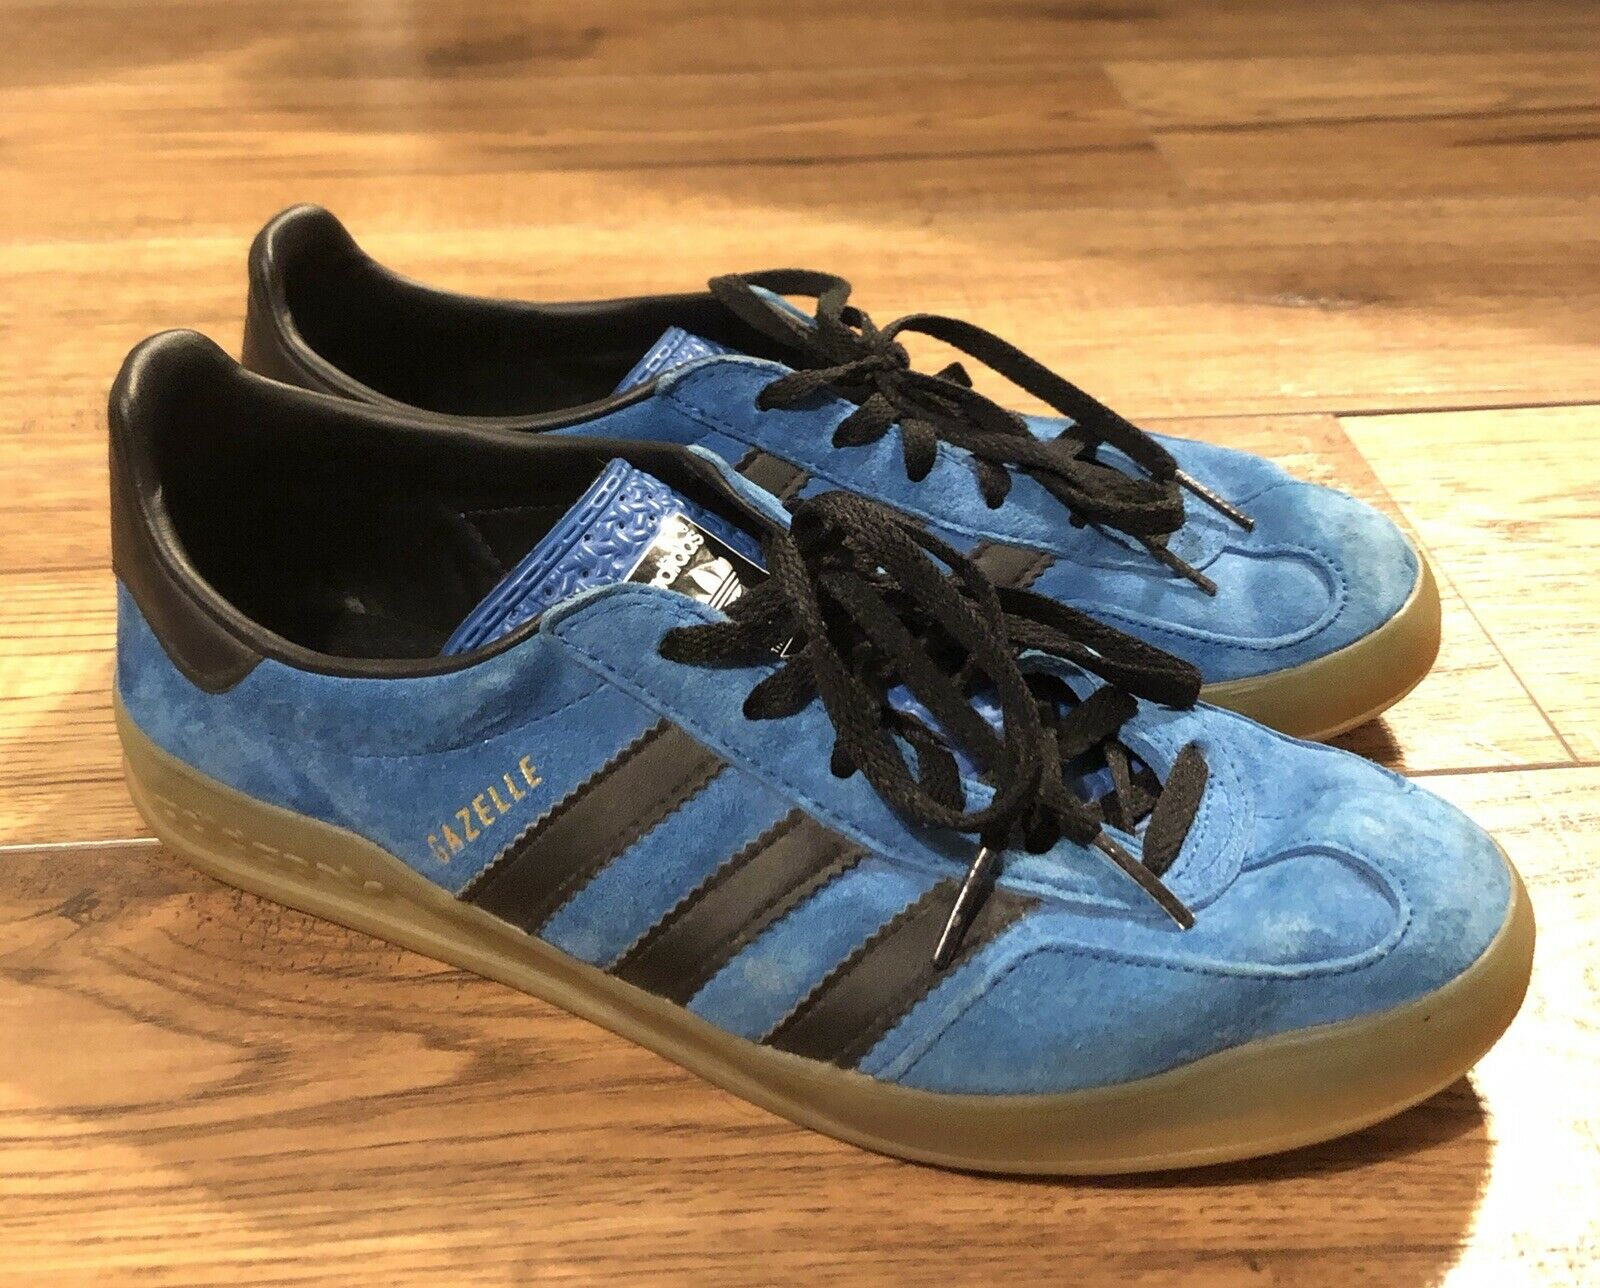 Adidas Gazelle Rare bluee Suede Trainers 7 Football Casual Casuals